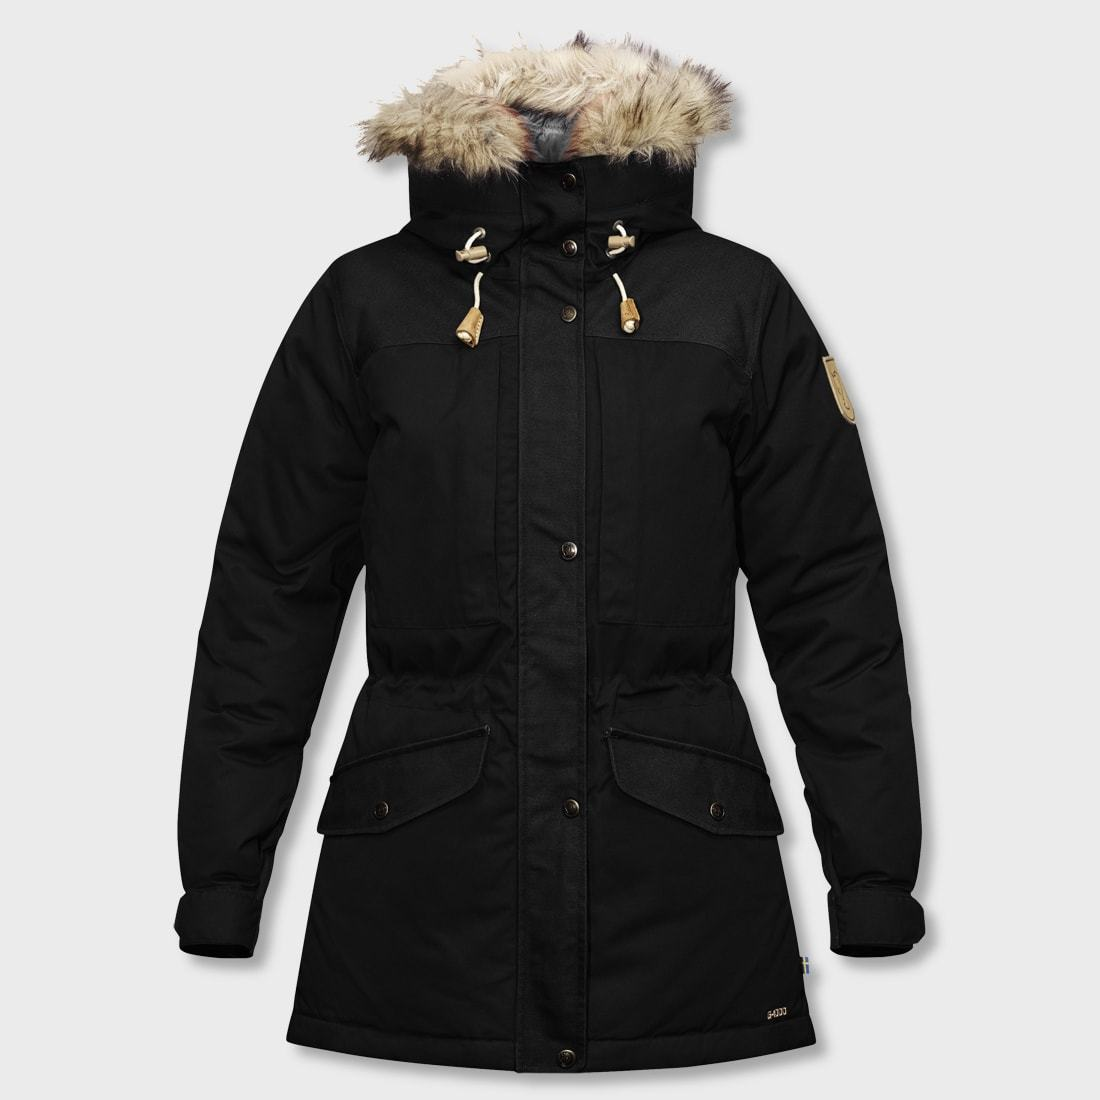 Fjallraven Singi Down Jacket Women's Black